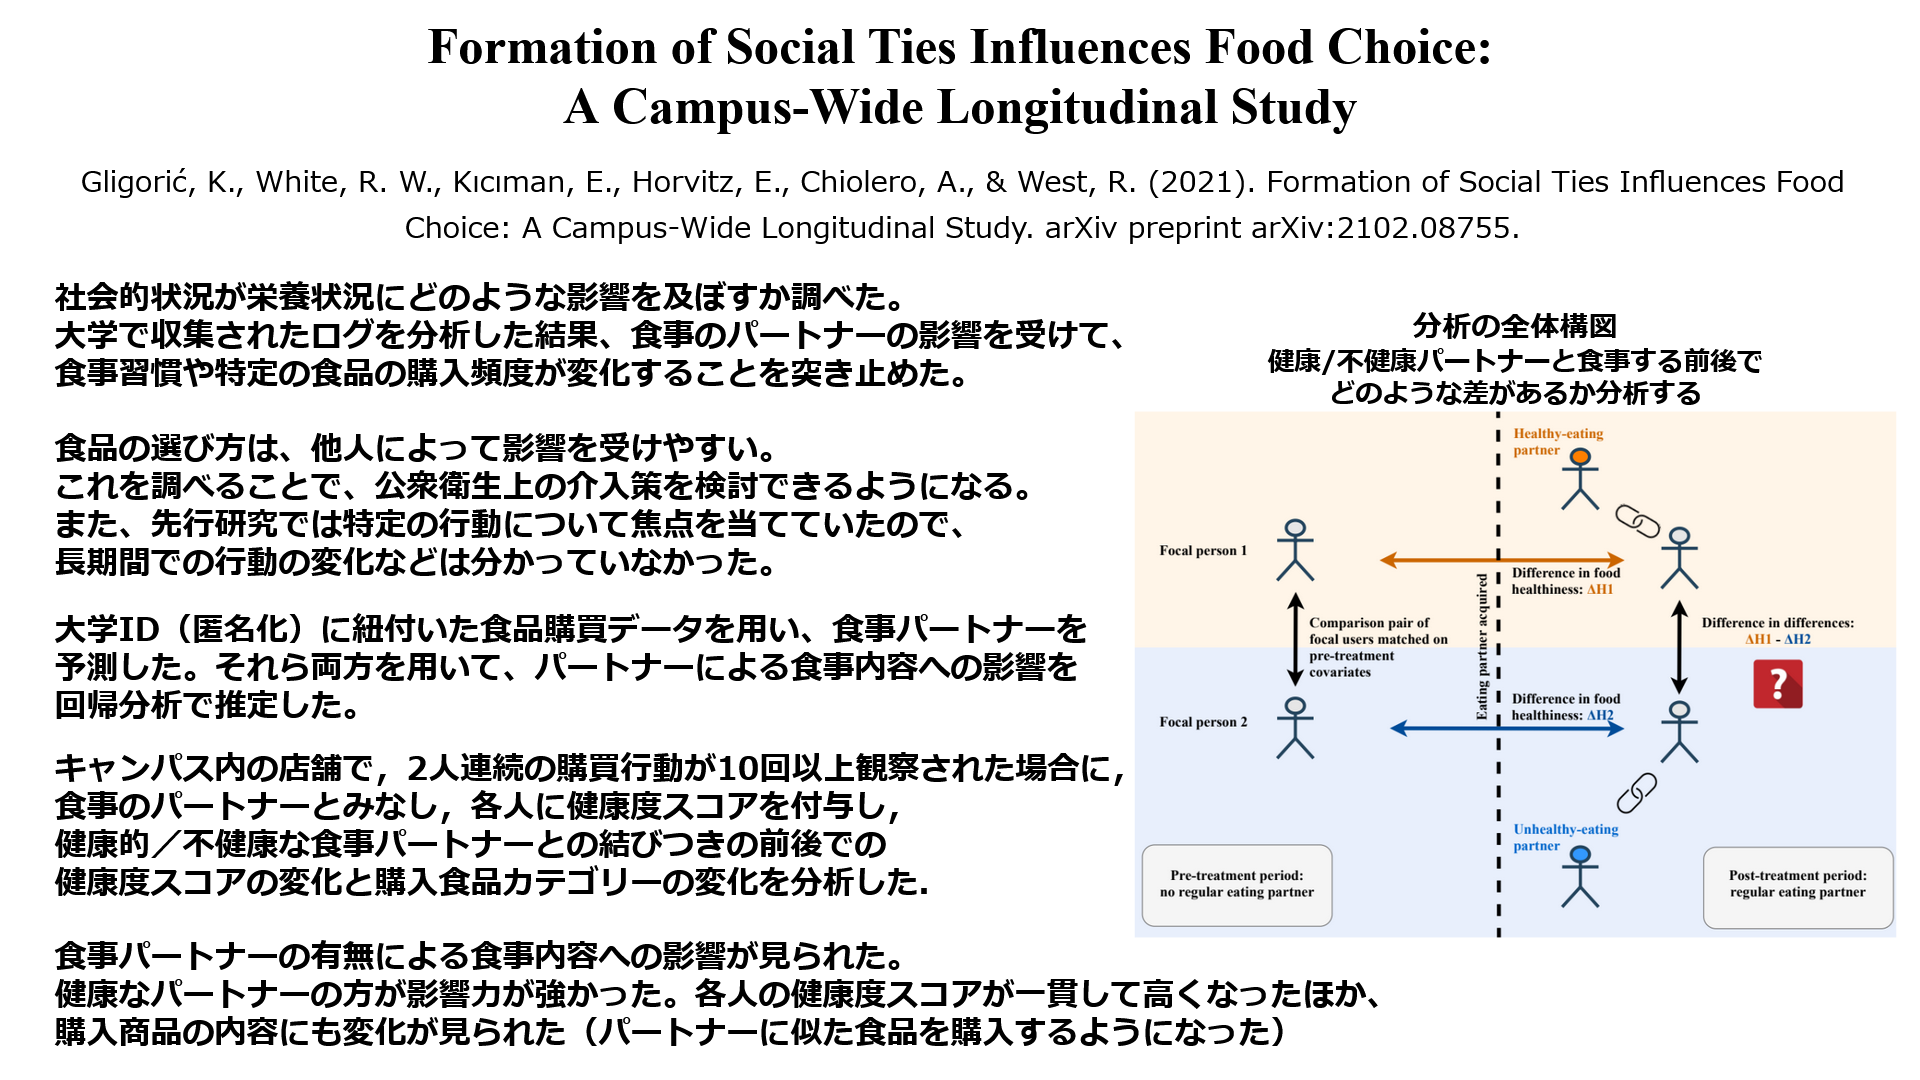 Formation of Social Ties Influences Food Choice.png (326.6 kB)